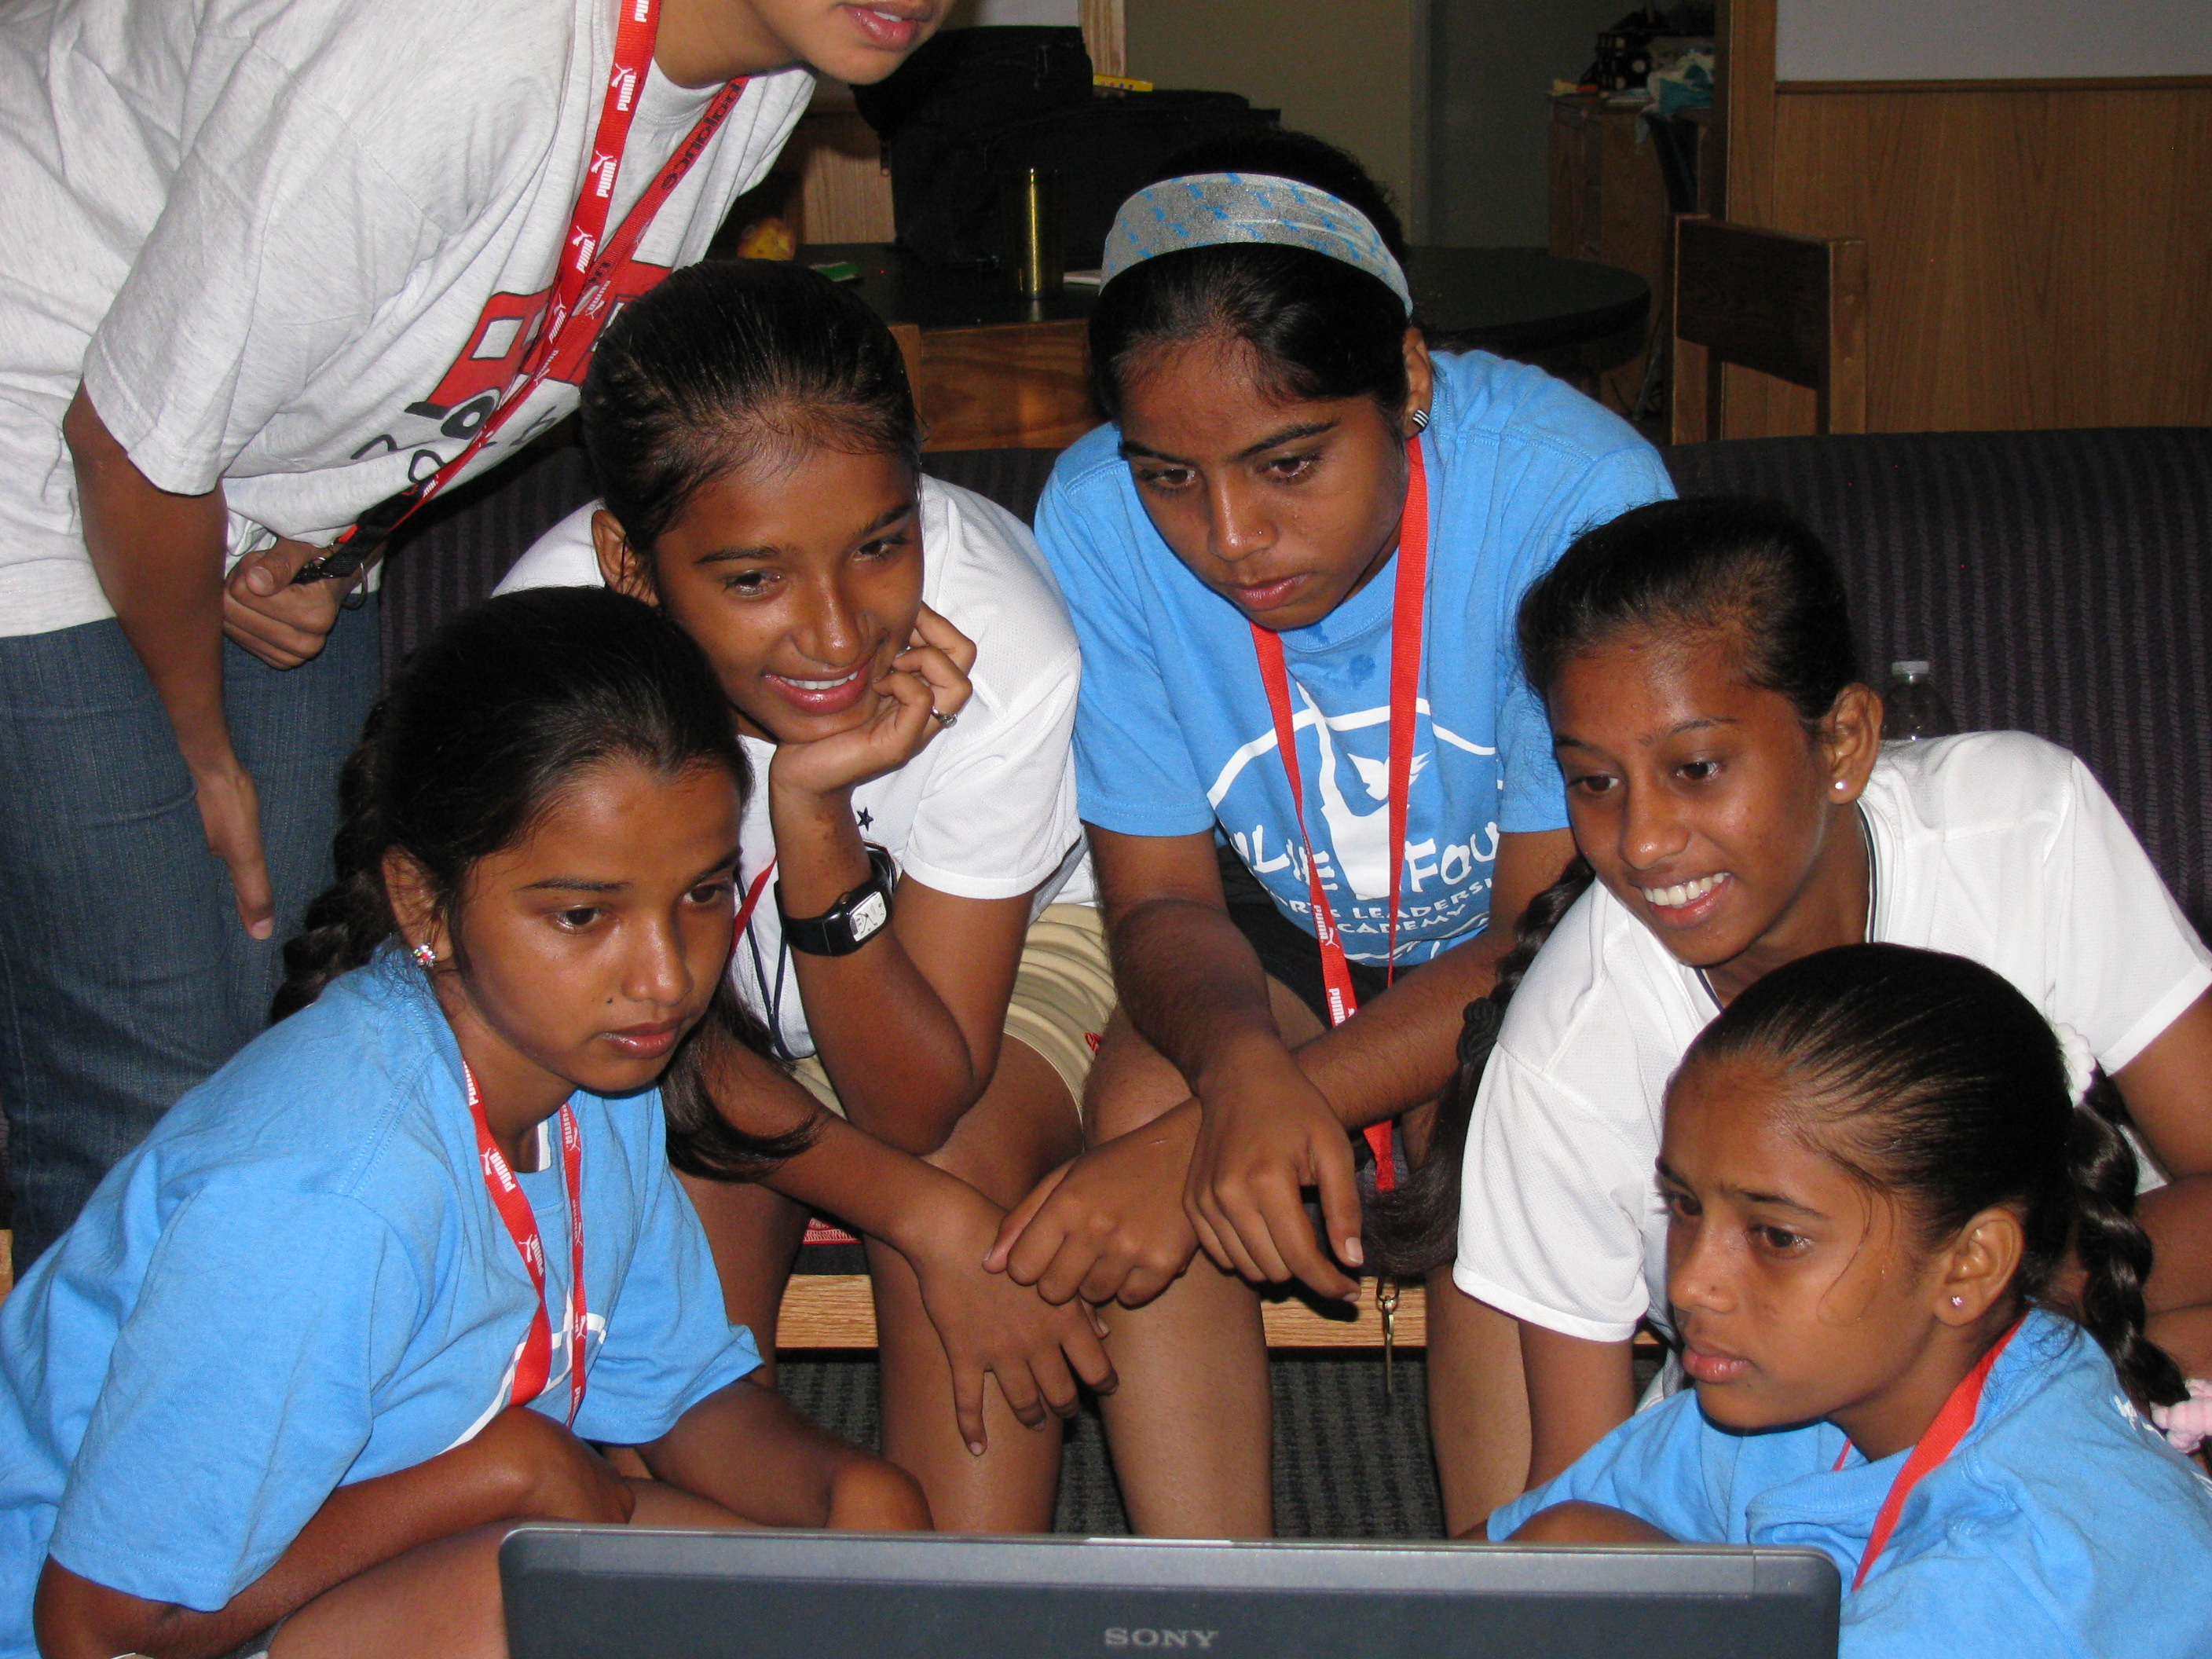 Huddled around the laptop in New Jersey, the girls from India in the midst of an emotional video chat with their parents back in Mumbai...